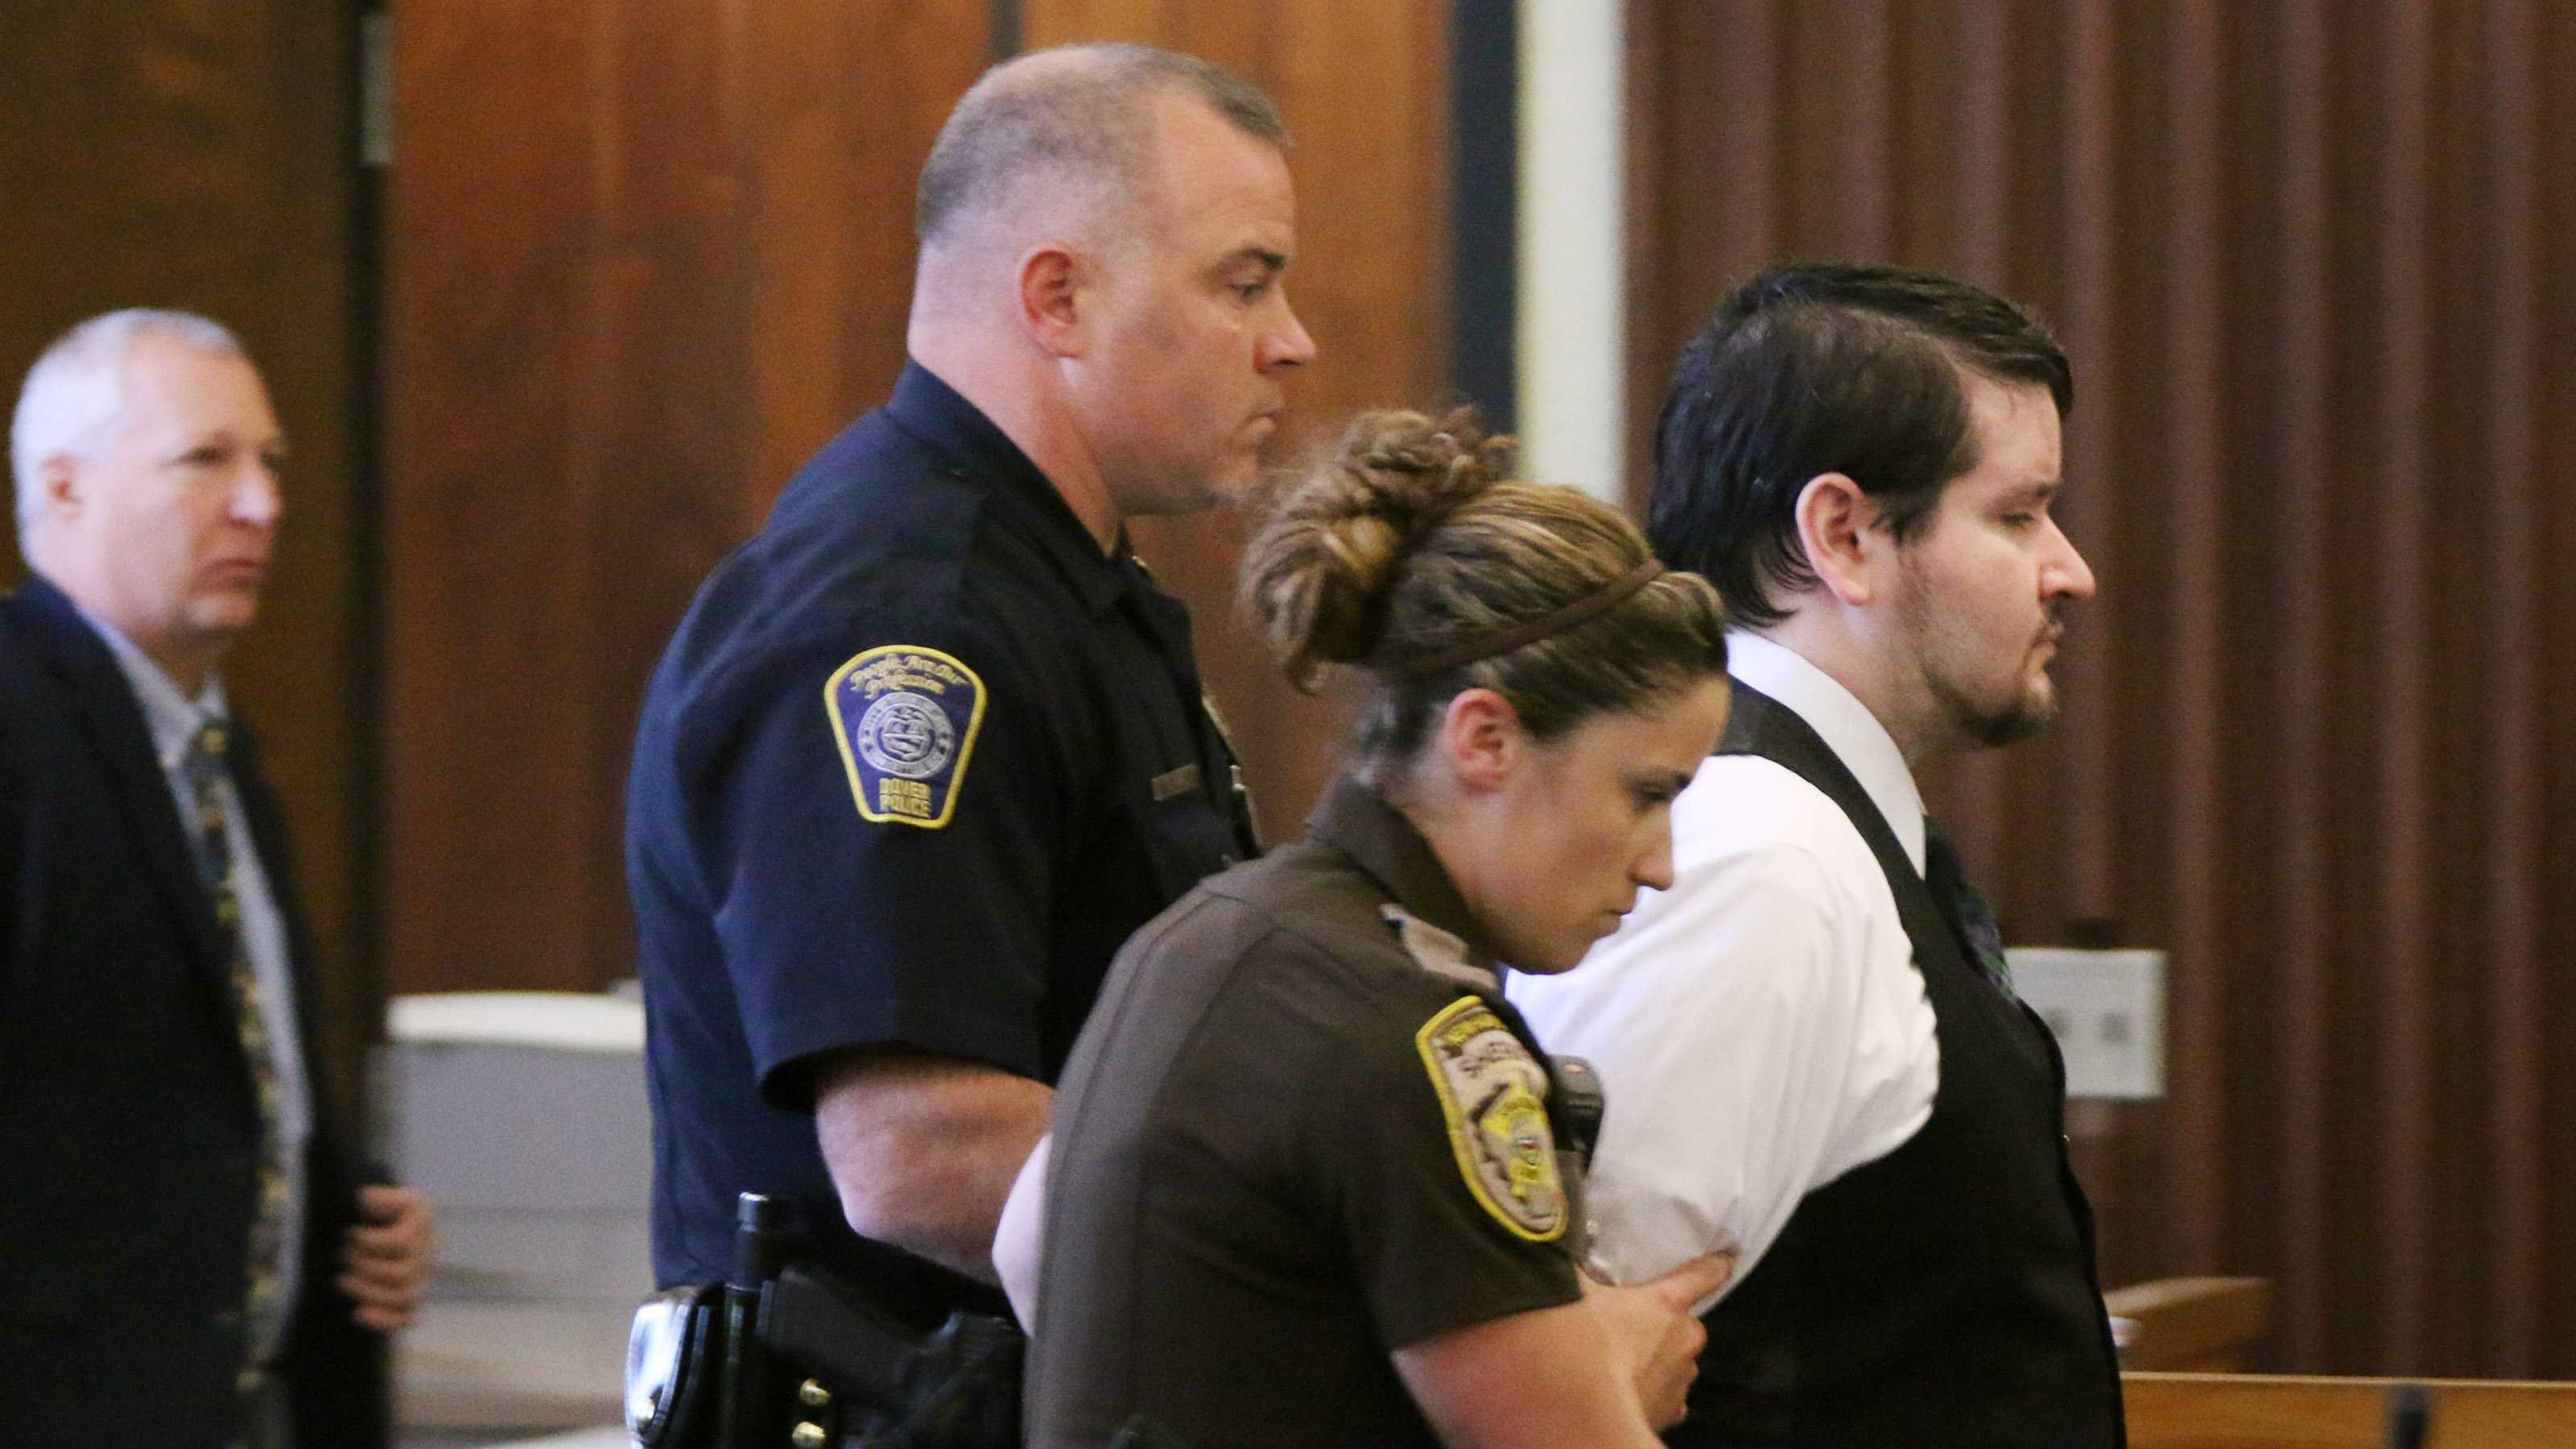 "Defendent Seth Mazzaglia, right, is lead from the courtroom Friday, June 27, 2014 in Strafford County Superior Court in Dover, N.H. after he was found guilty of murder for the the Oct. 9, 2012 strangulation death of 19-year-old Elizabeth ""Lizzi"" Marriott, who was a student at the University of New Hampshire."